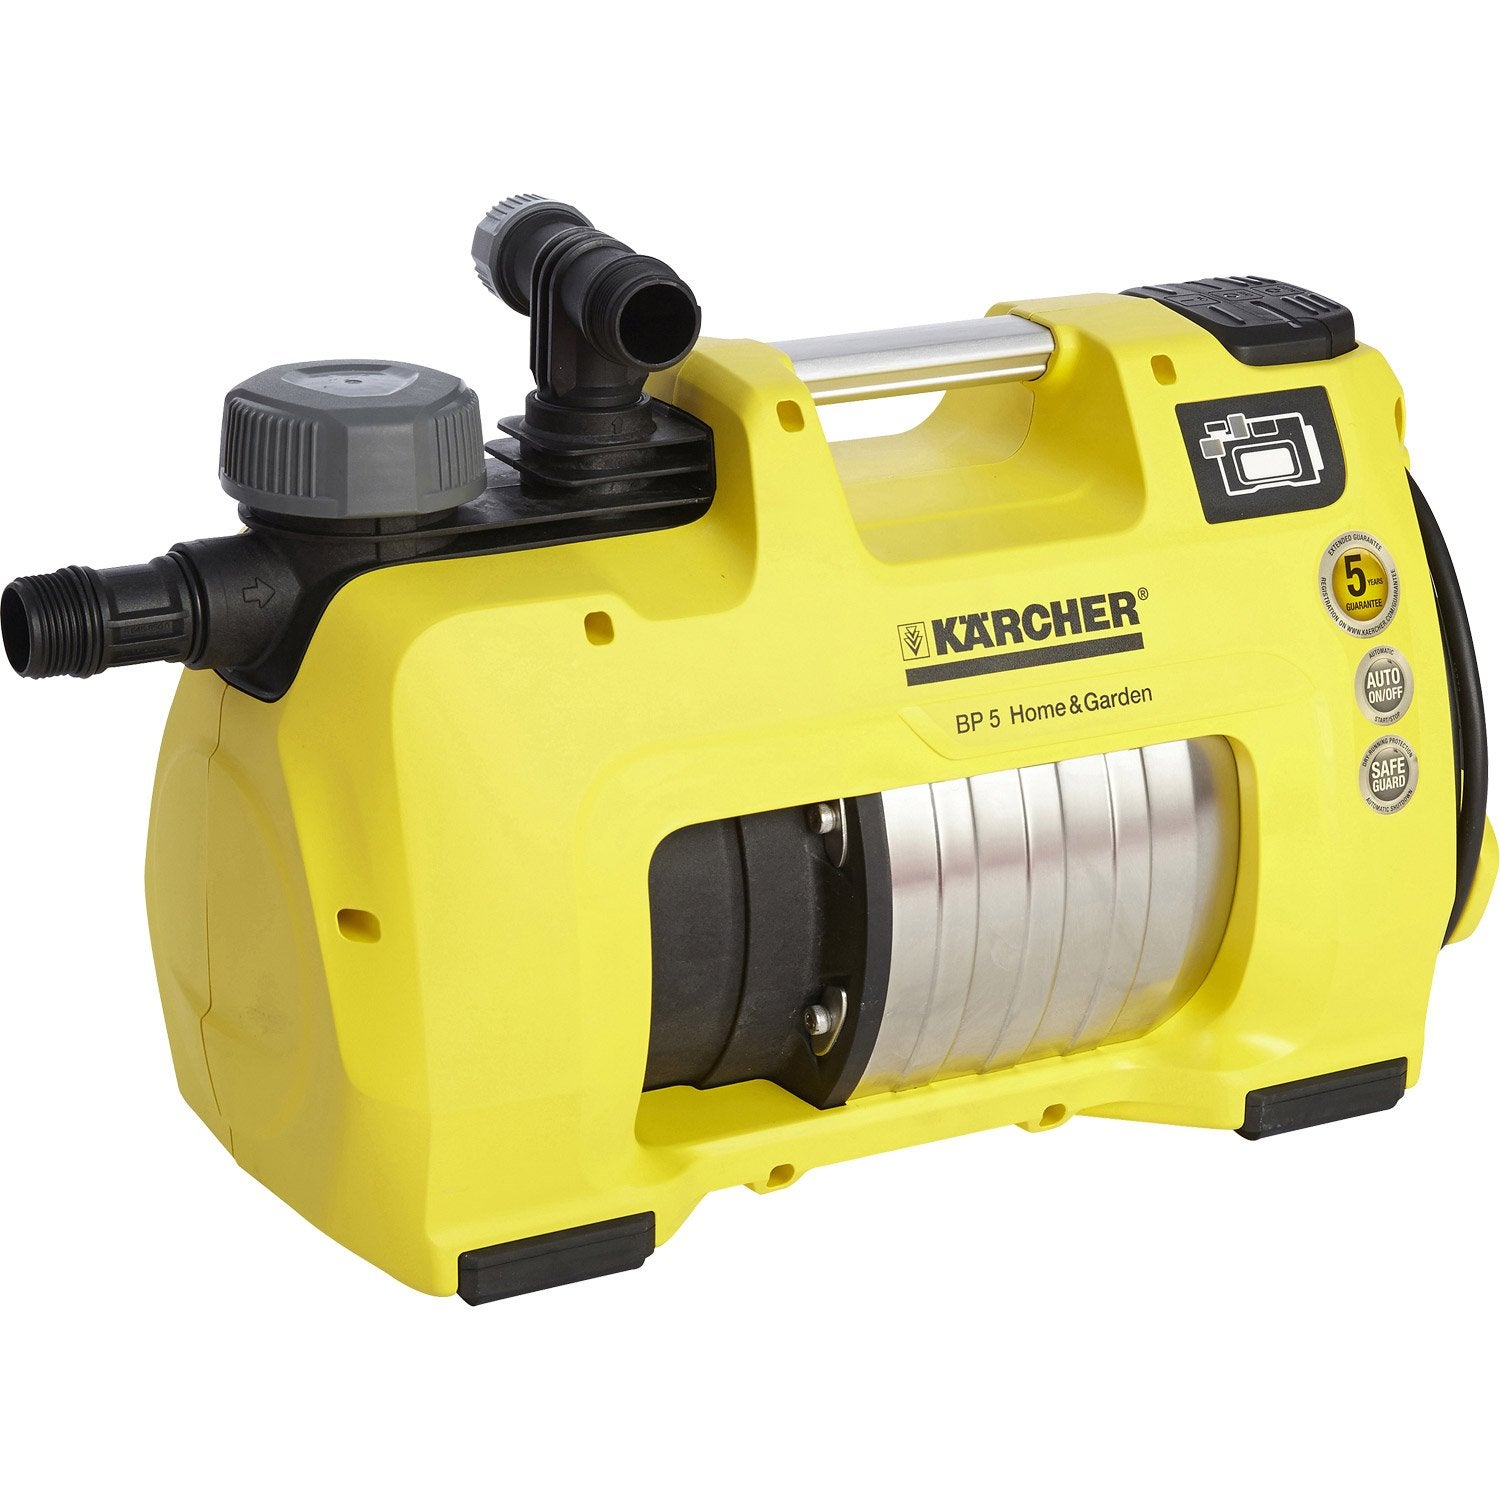 Pompe arrosage automatique karcher bp5 home and garden - Leroy merlin karcher ...